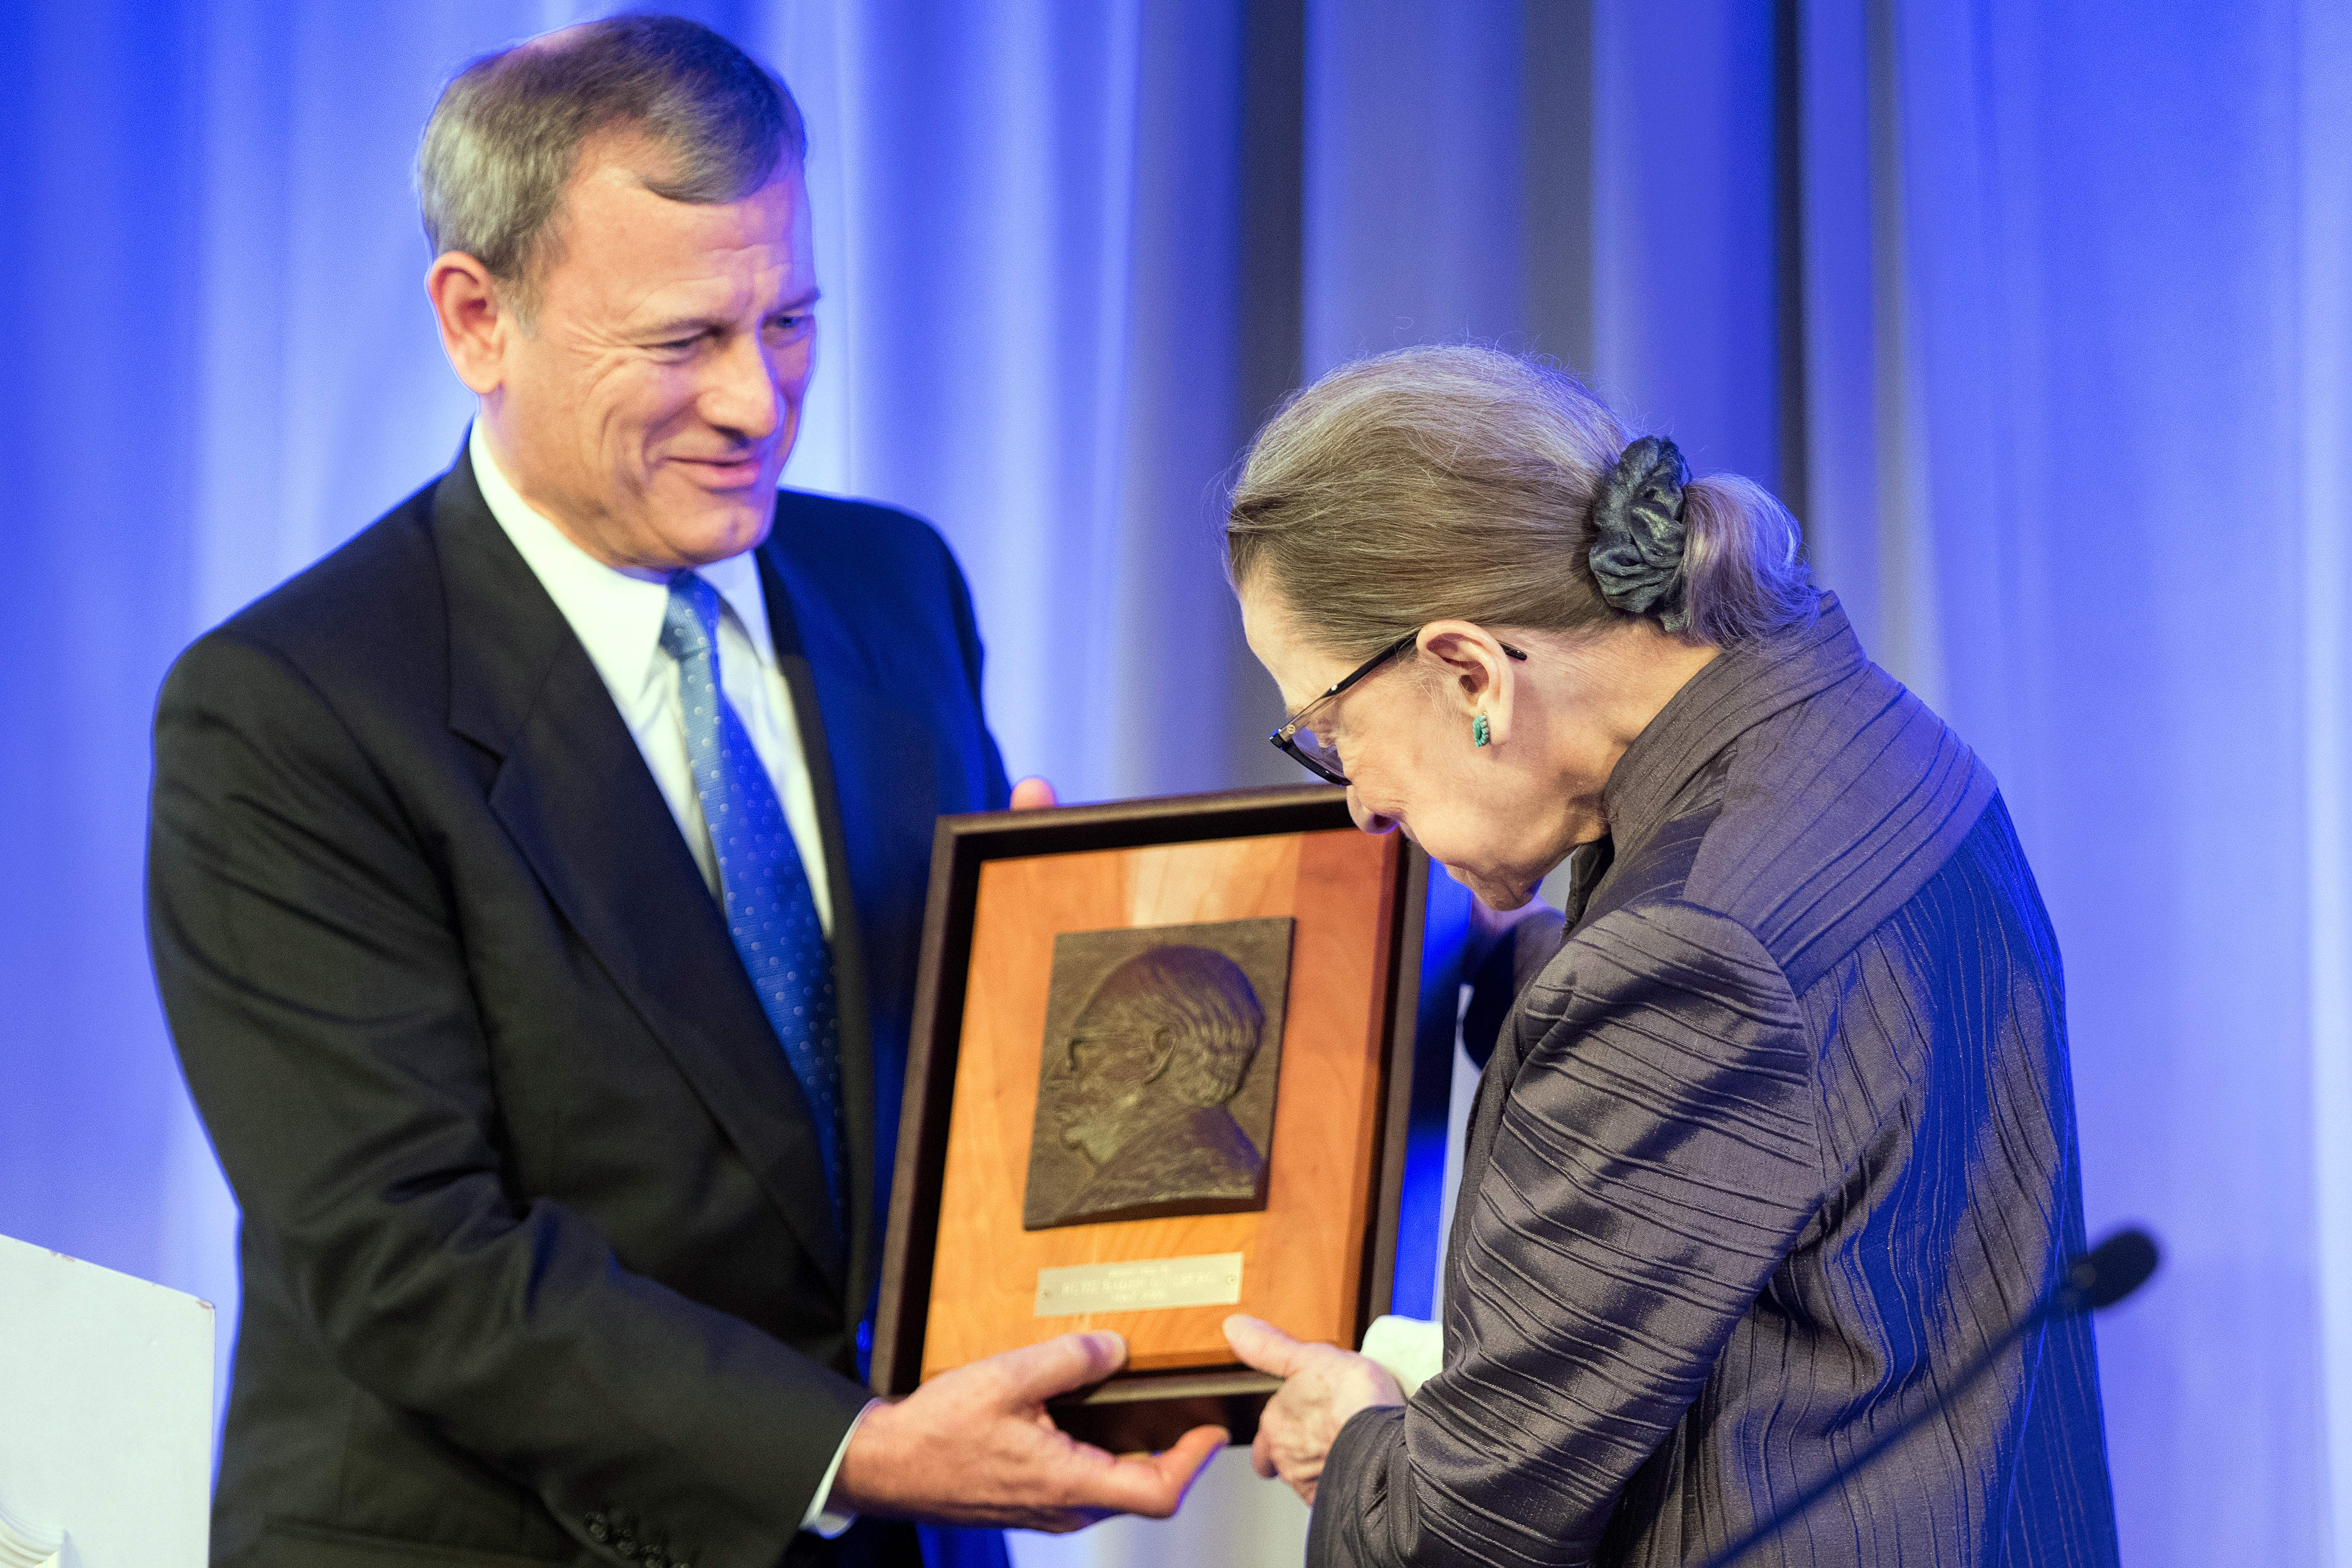 Justice Ruth Bader Ginsburg receives the American Law Institute's Henry J. Friendly Medal from Chief Justice John Roberts on May 21, 2018. (Jim Watson/AFP/Getty Images)